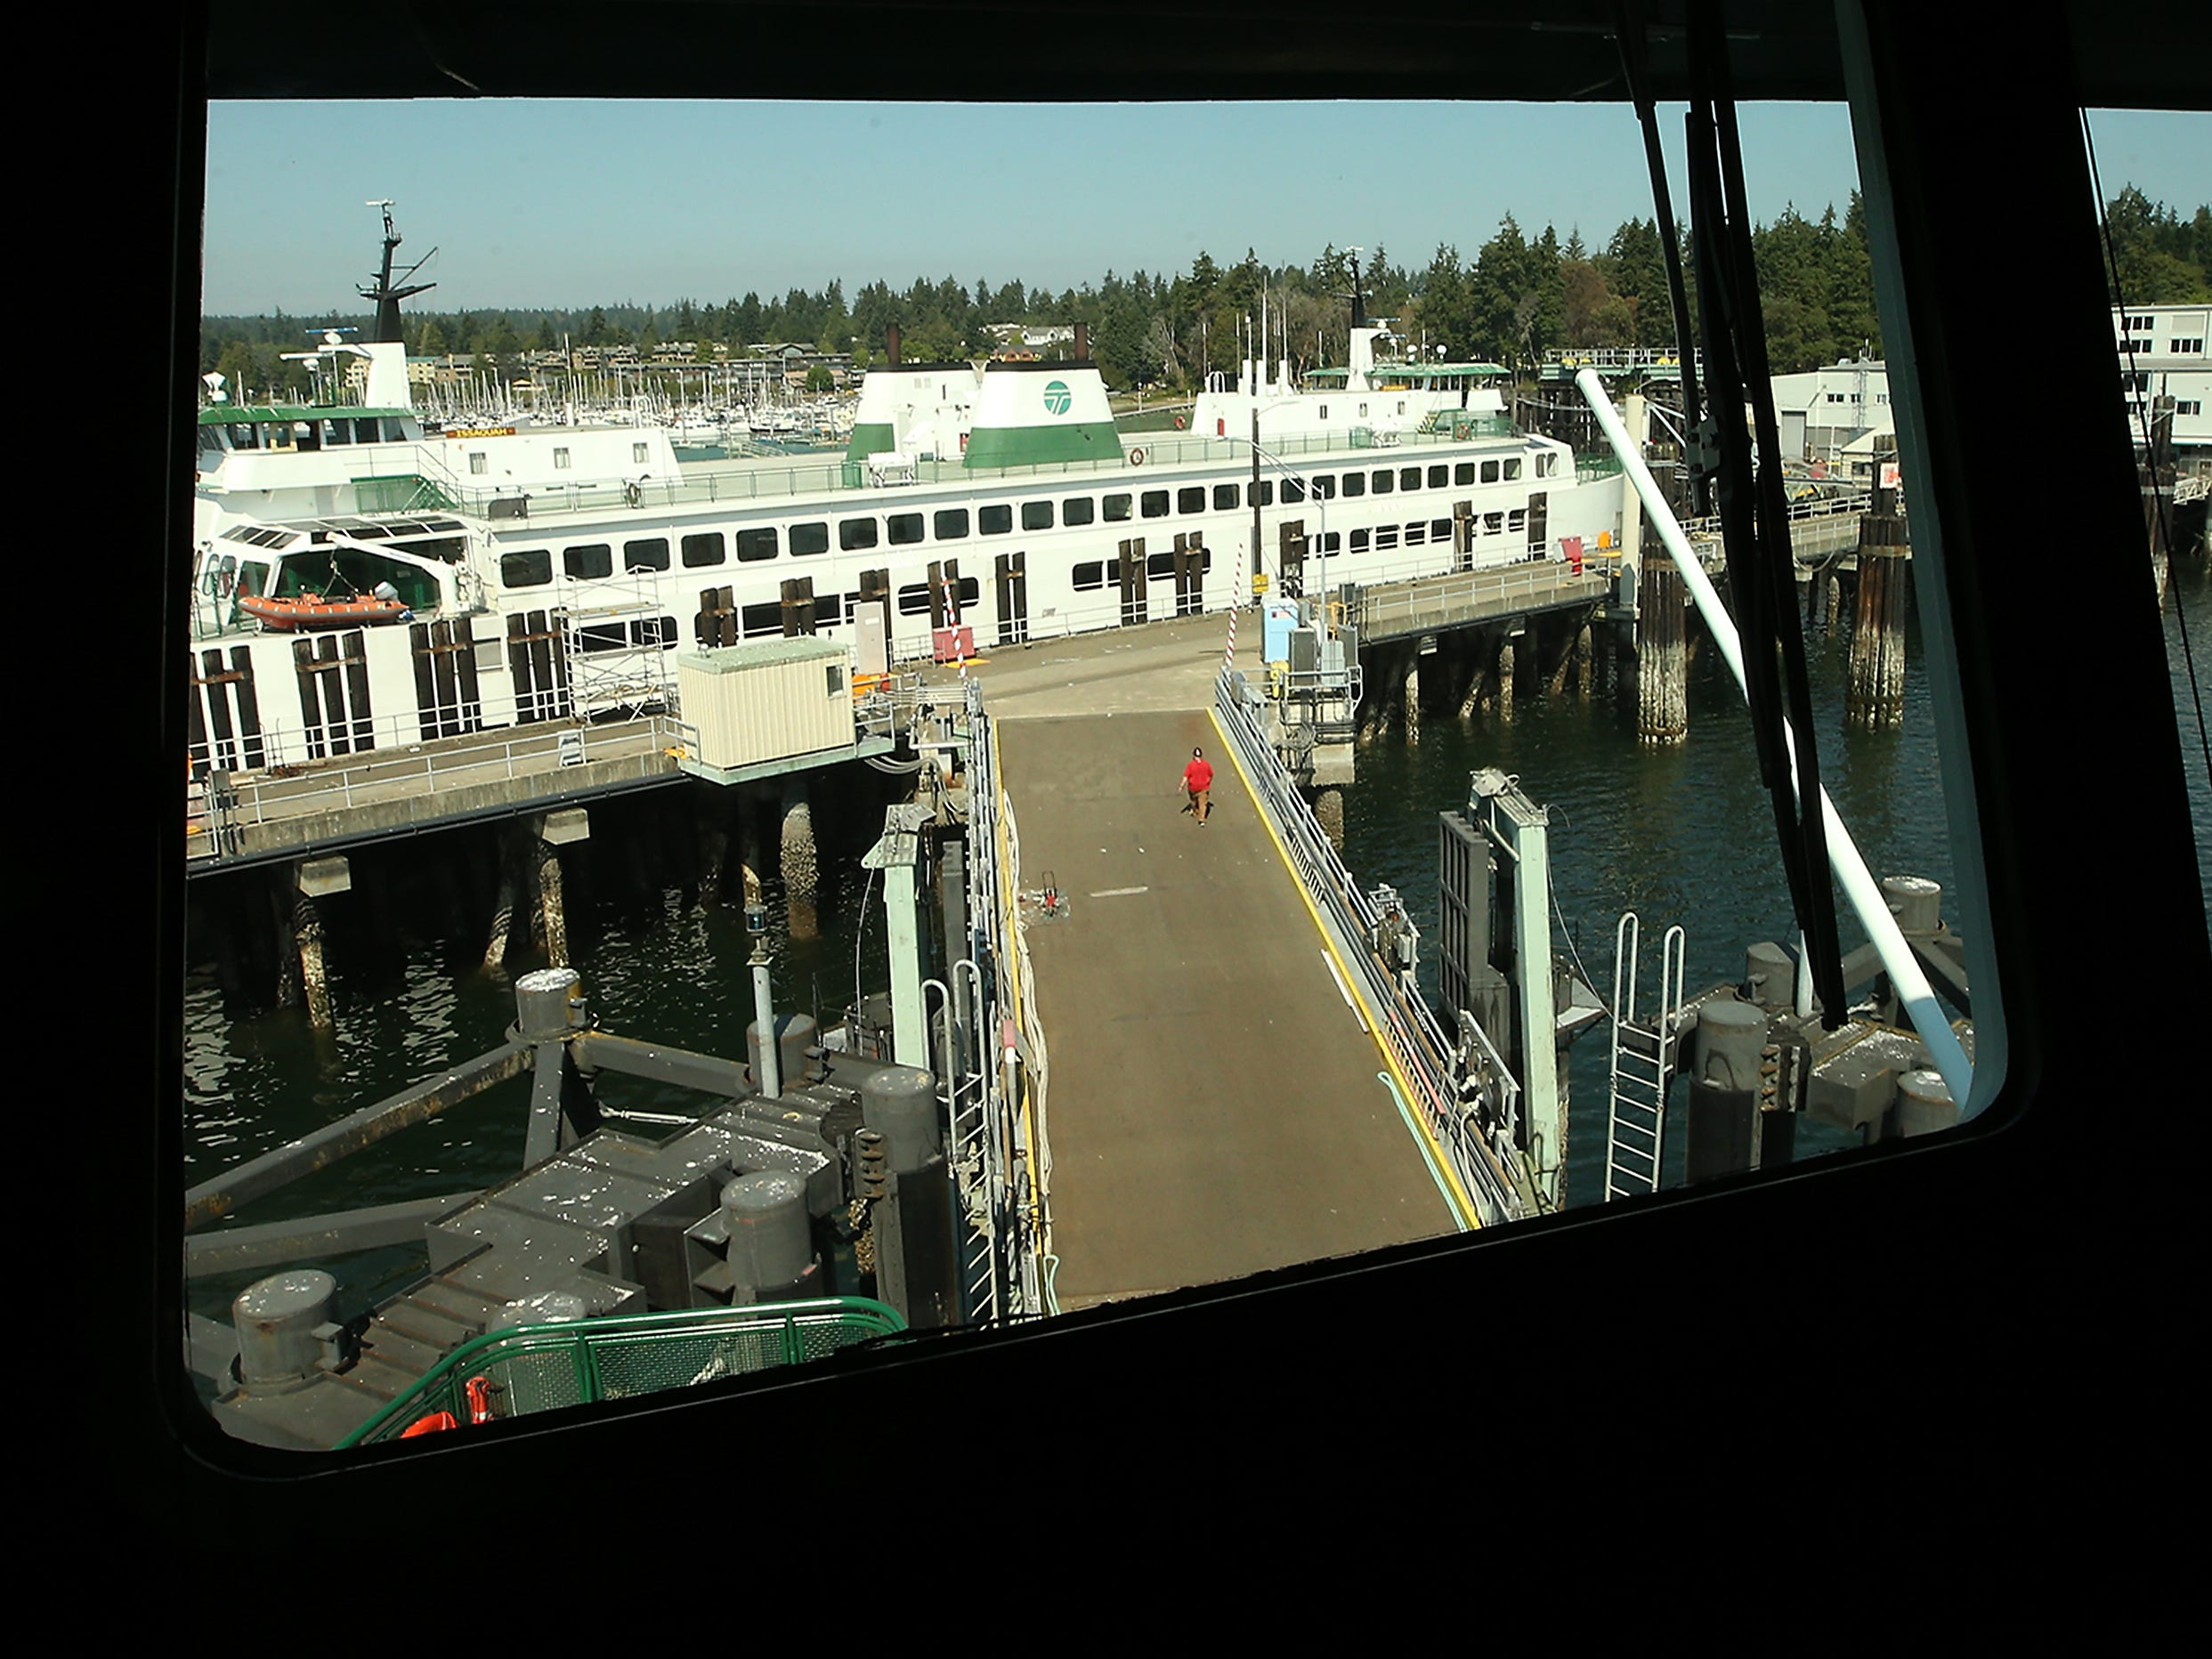 The Washington State Ferry Issaquah is framed in the pilot house window of the M/V Suquamish at the Eagle Harbor Maintenance Facility on Thursday, August 9, 2018.